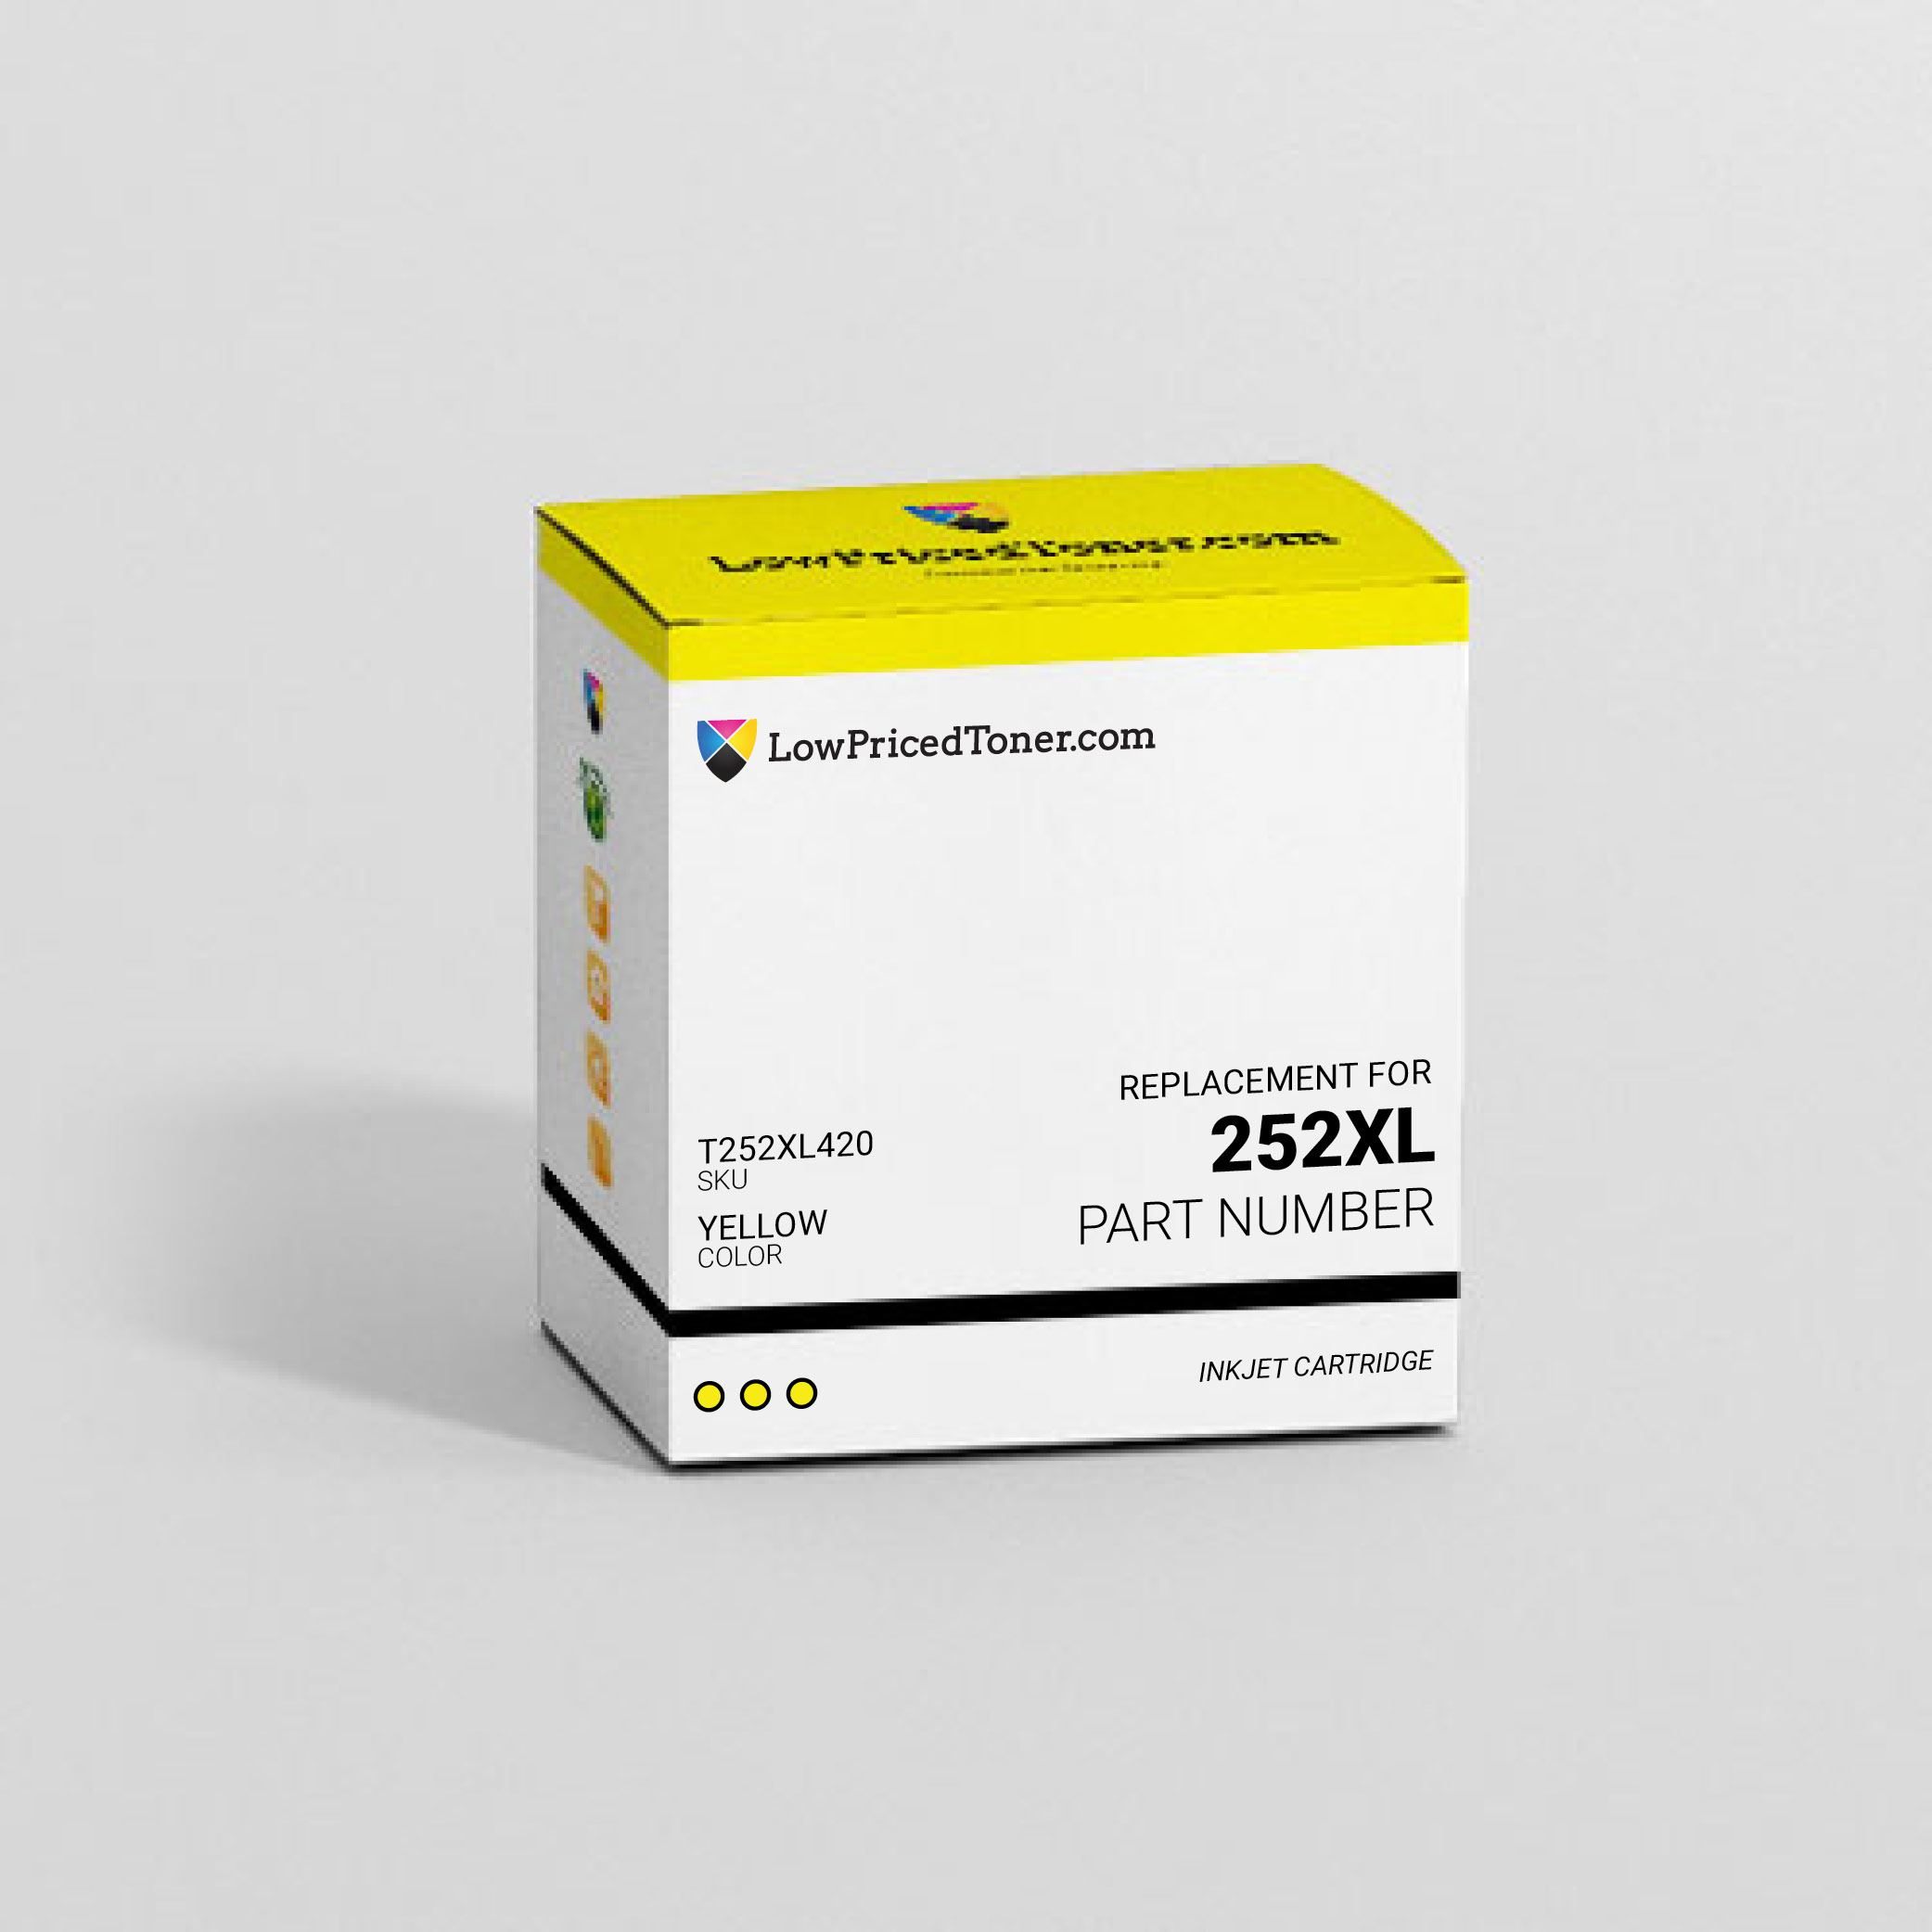 Epson T252XL420 252XL Remanufactured Yellow Ink Cartridge High Yield